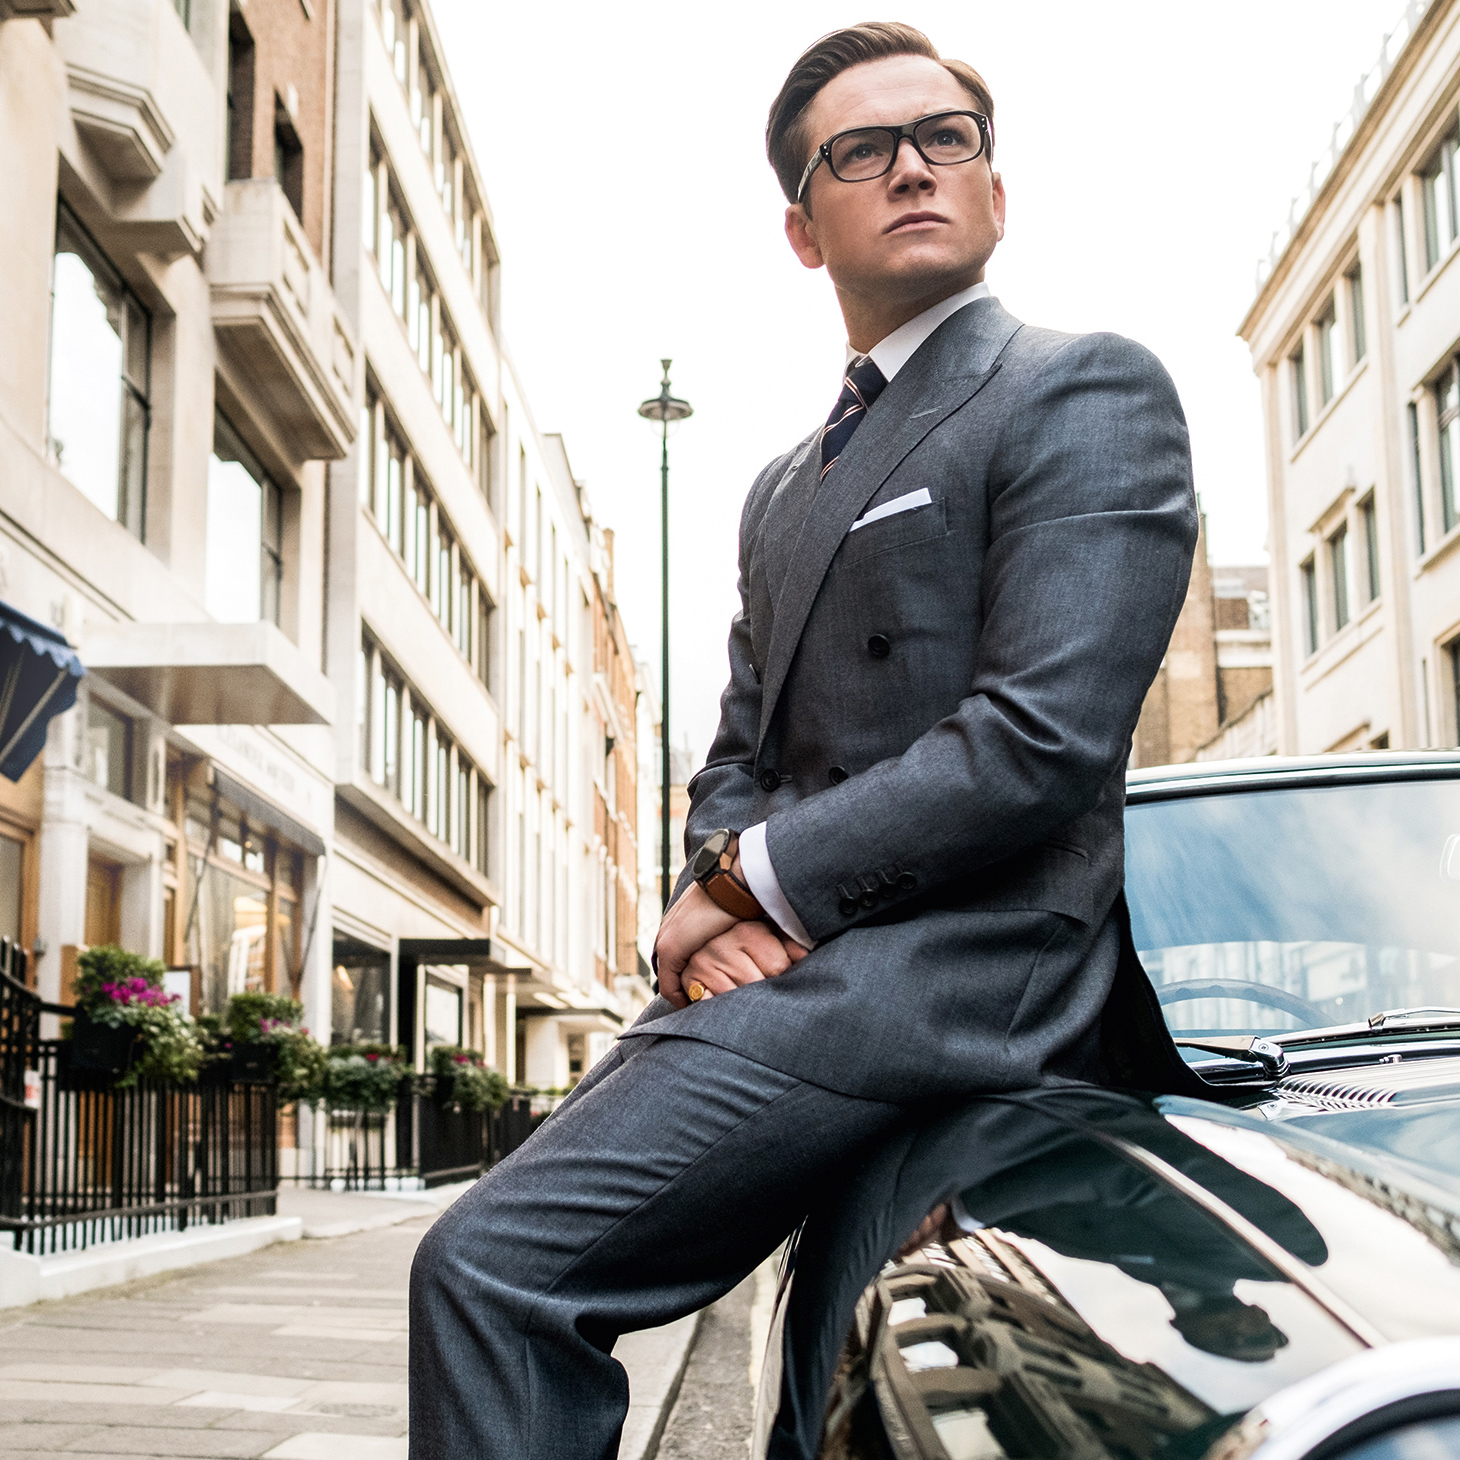 a5f4d1012671 How to dress like the stars of Kingsman | How To Spend It